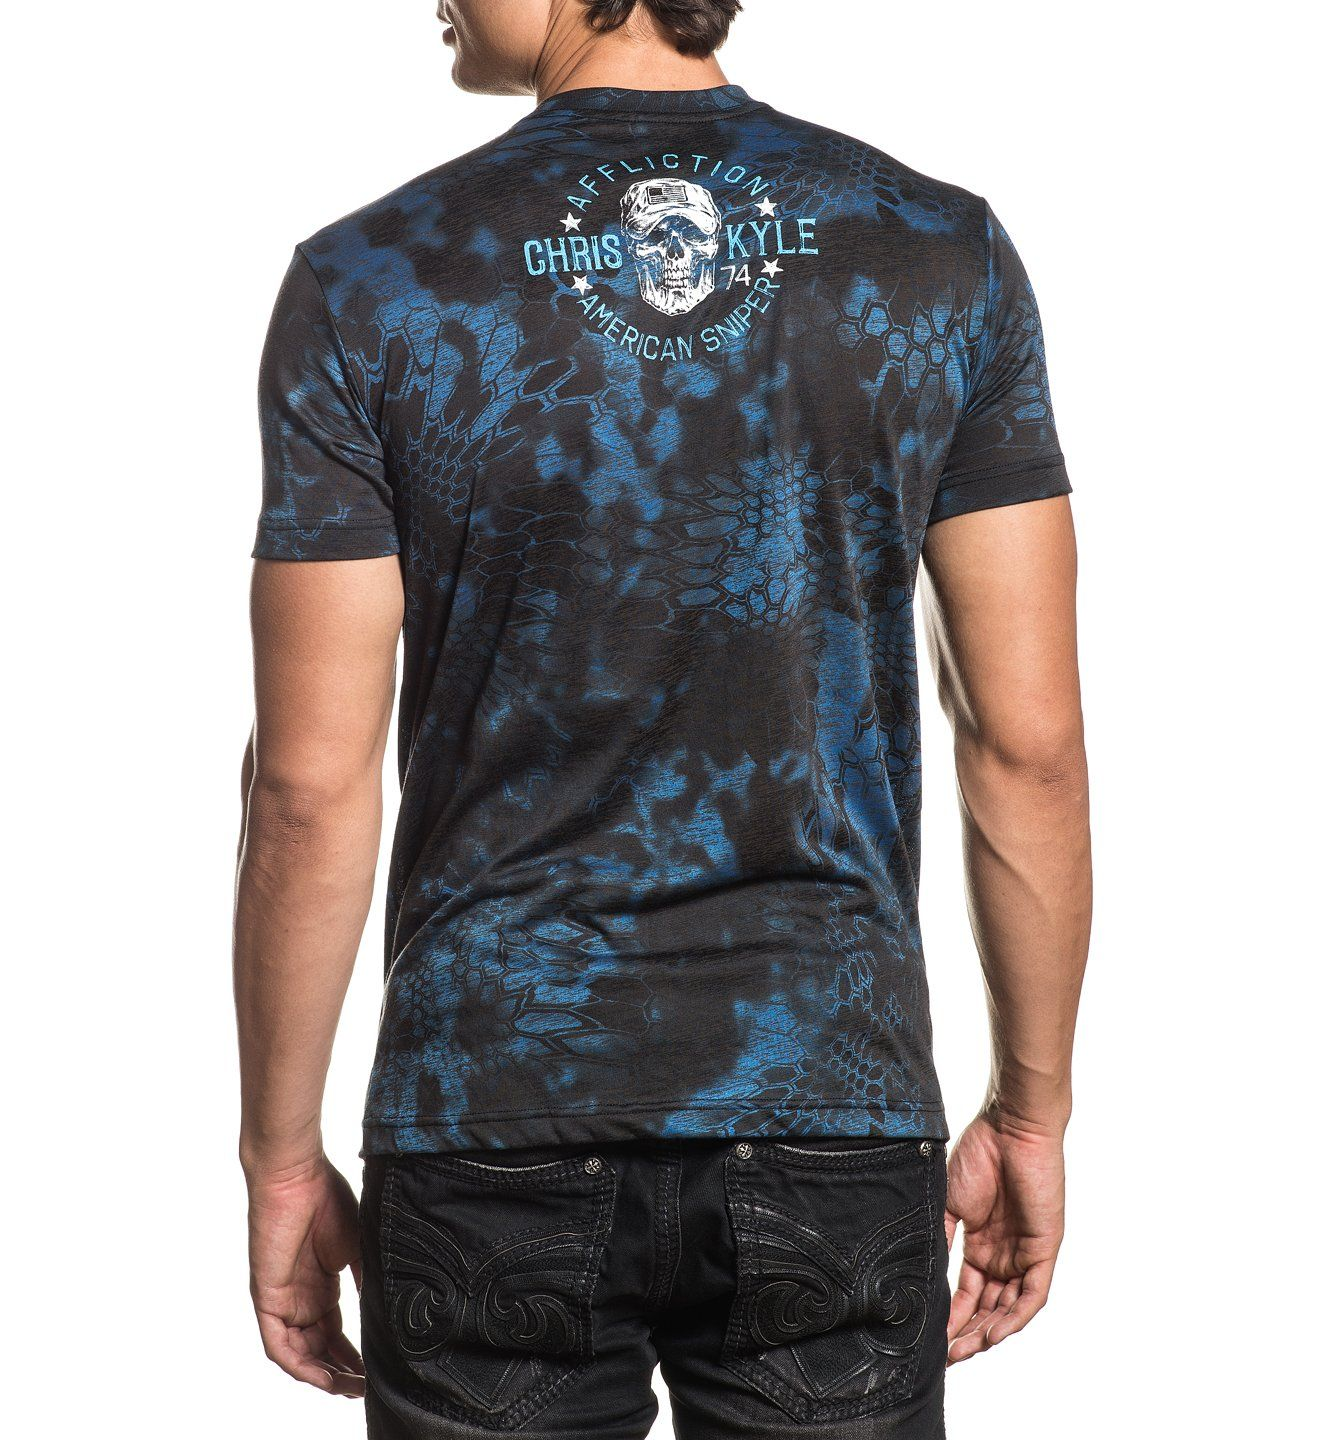 Ck Legendary - Mens Short Sleeve Tees - Affliction Clothing